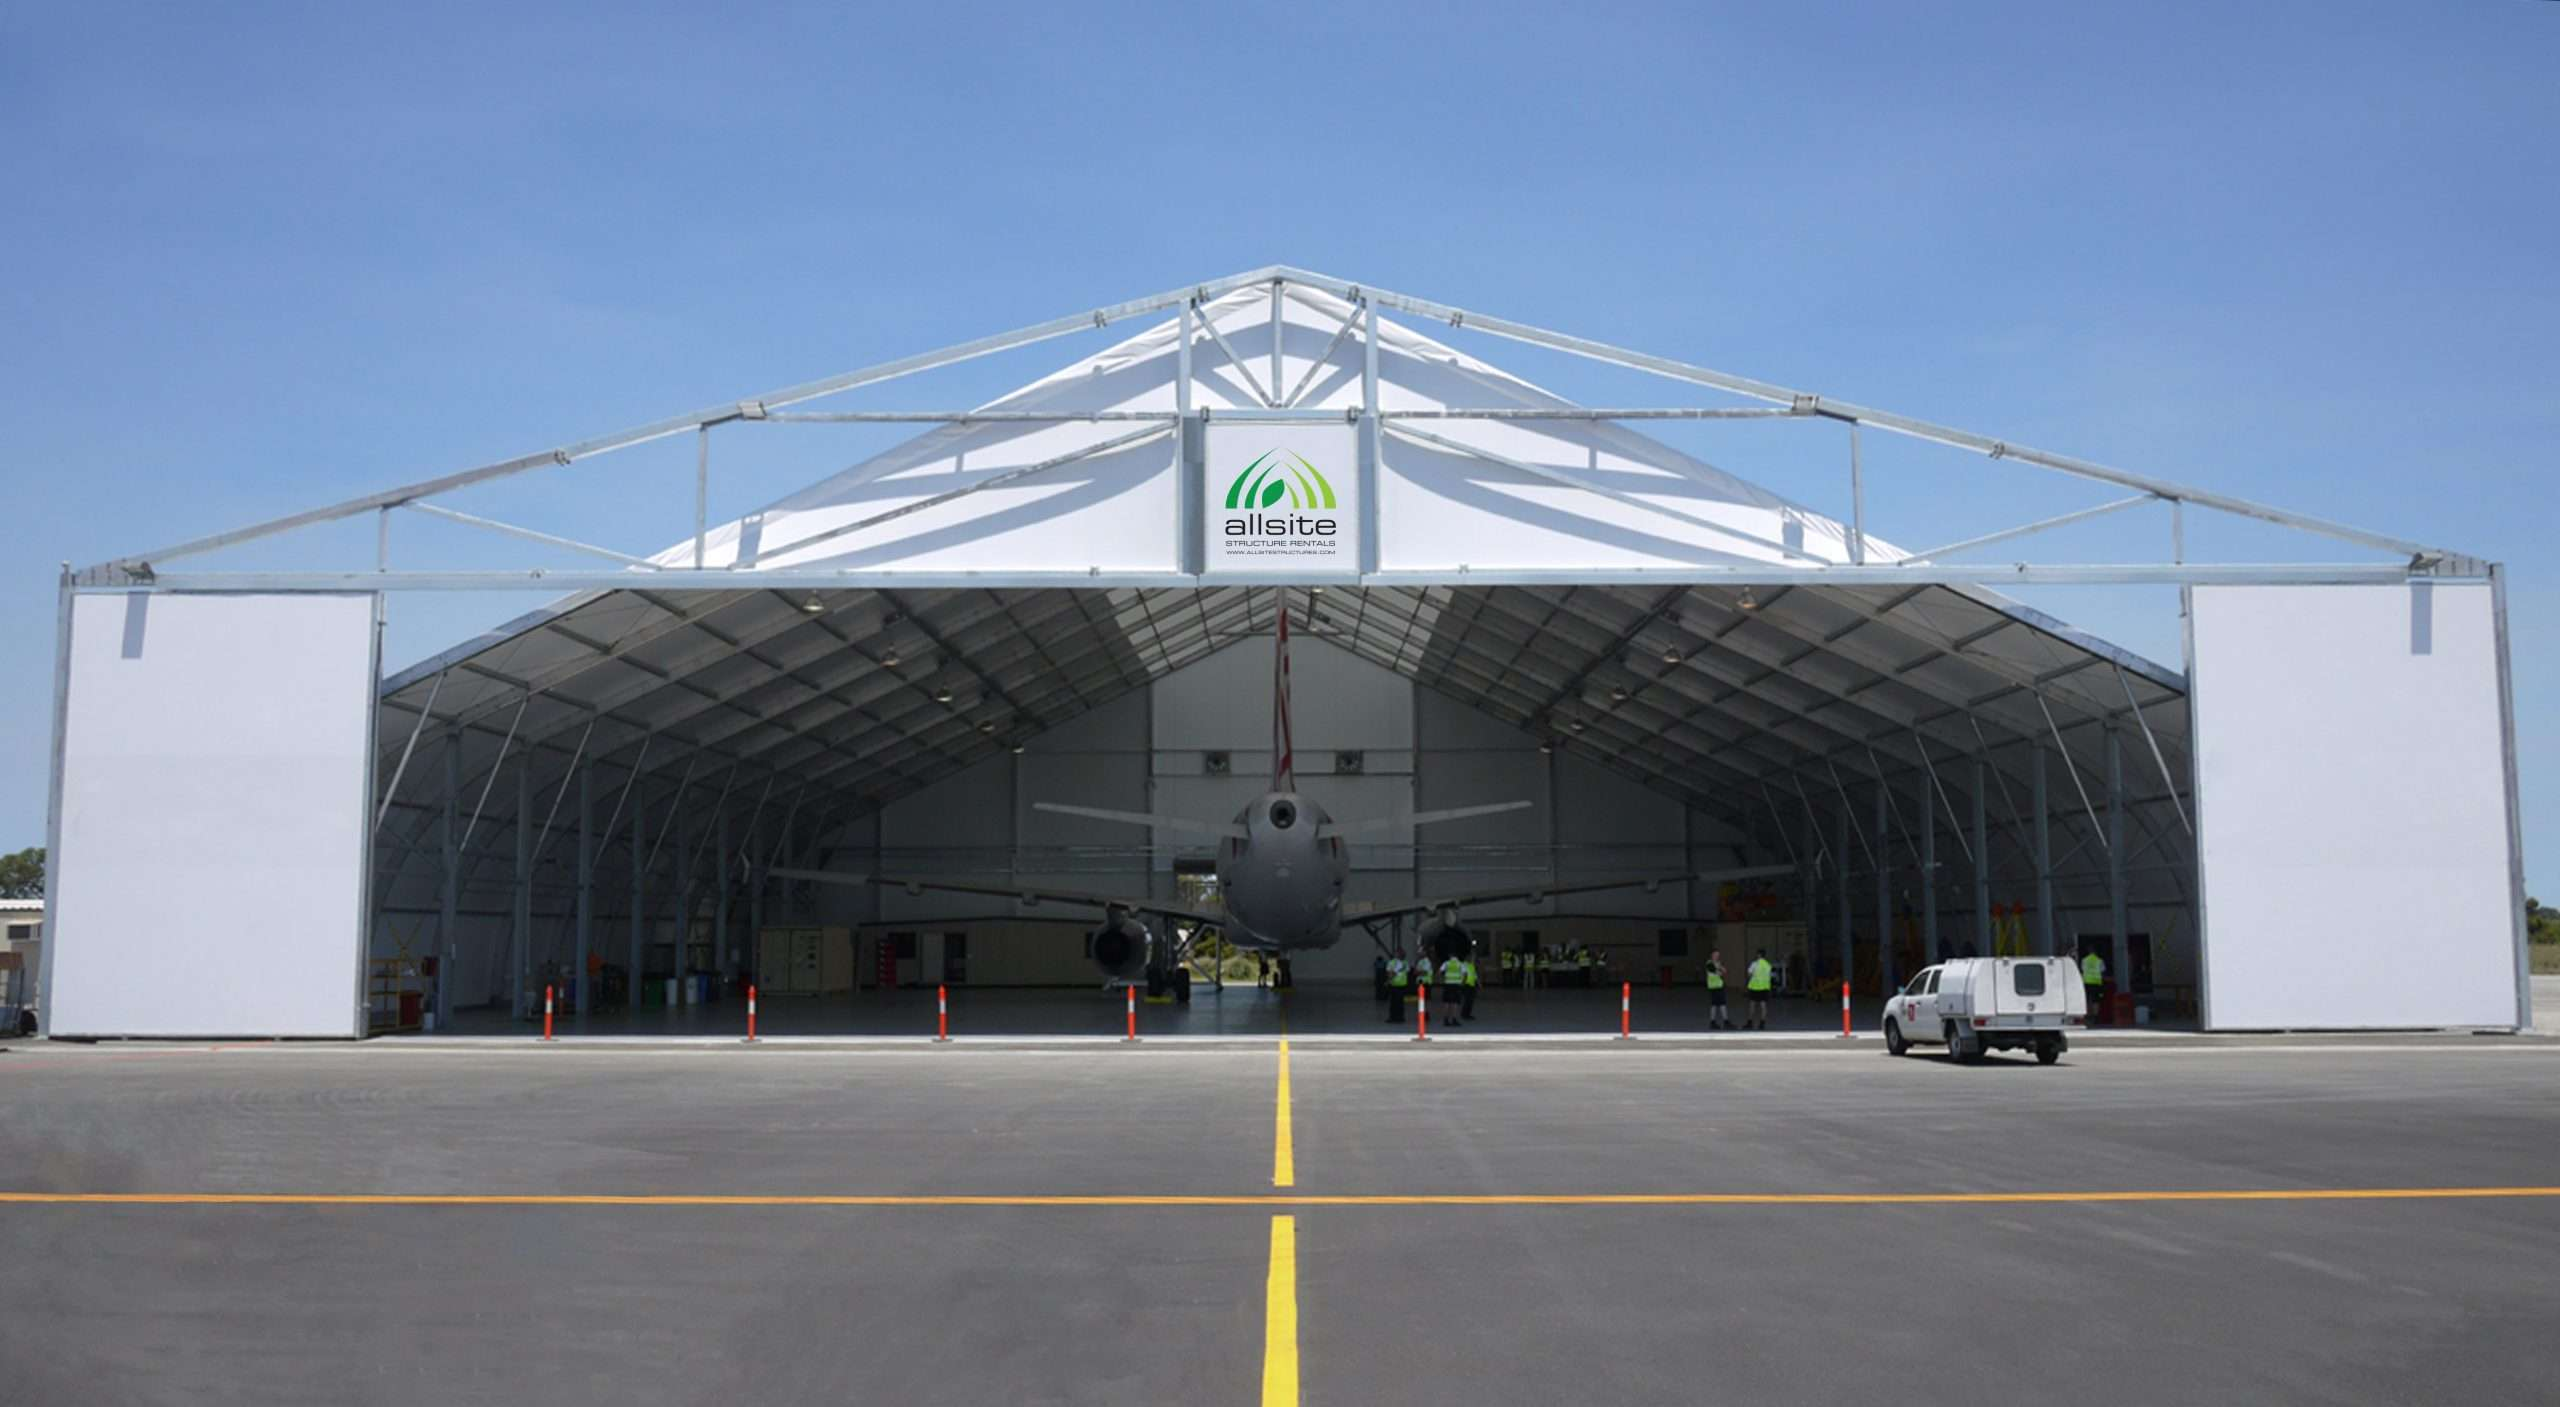 tension fabric building configured for military aviation use